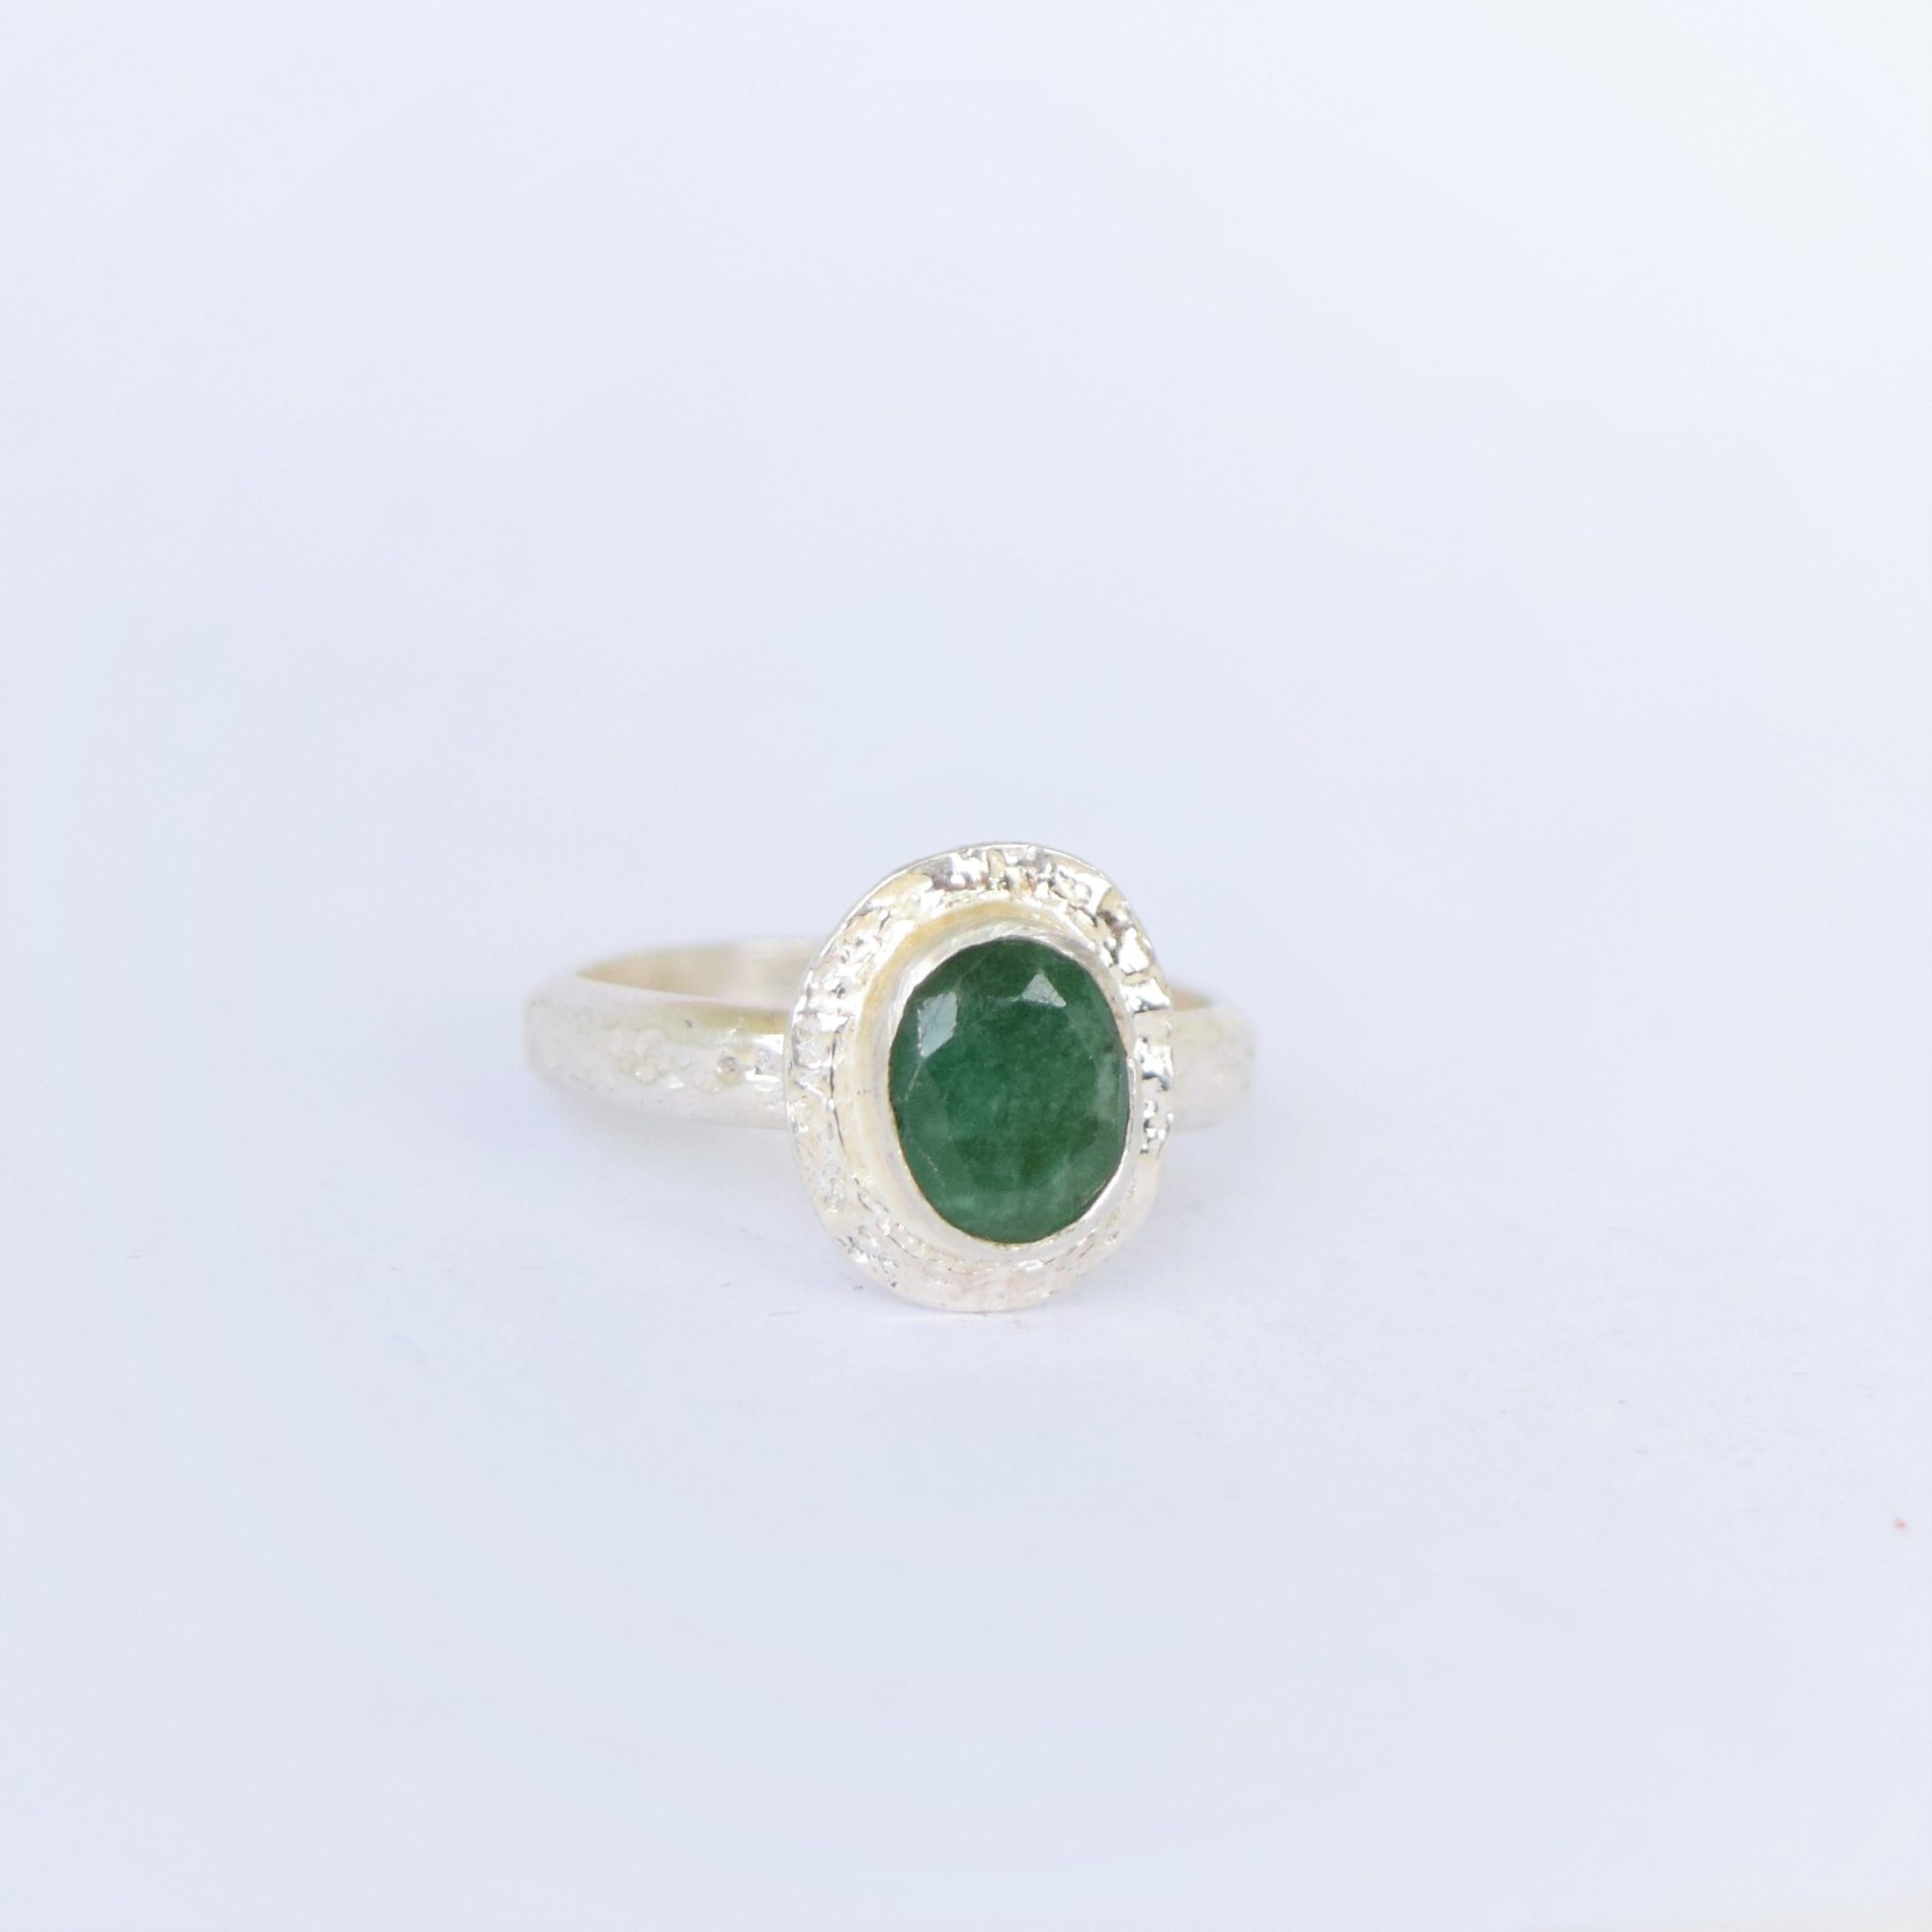 colombian m ring estate carved emerald jewelry image mughal s